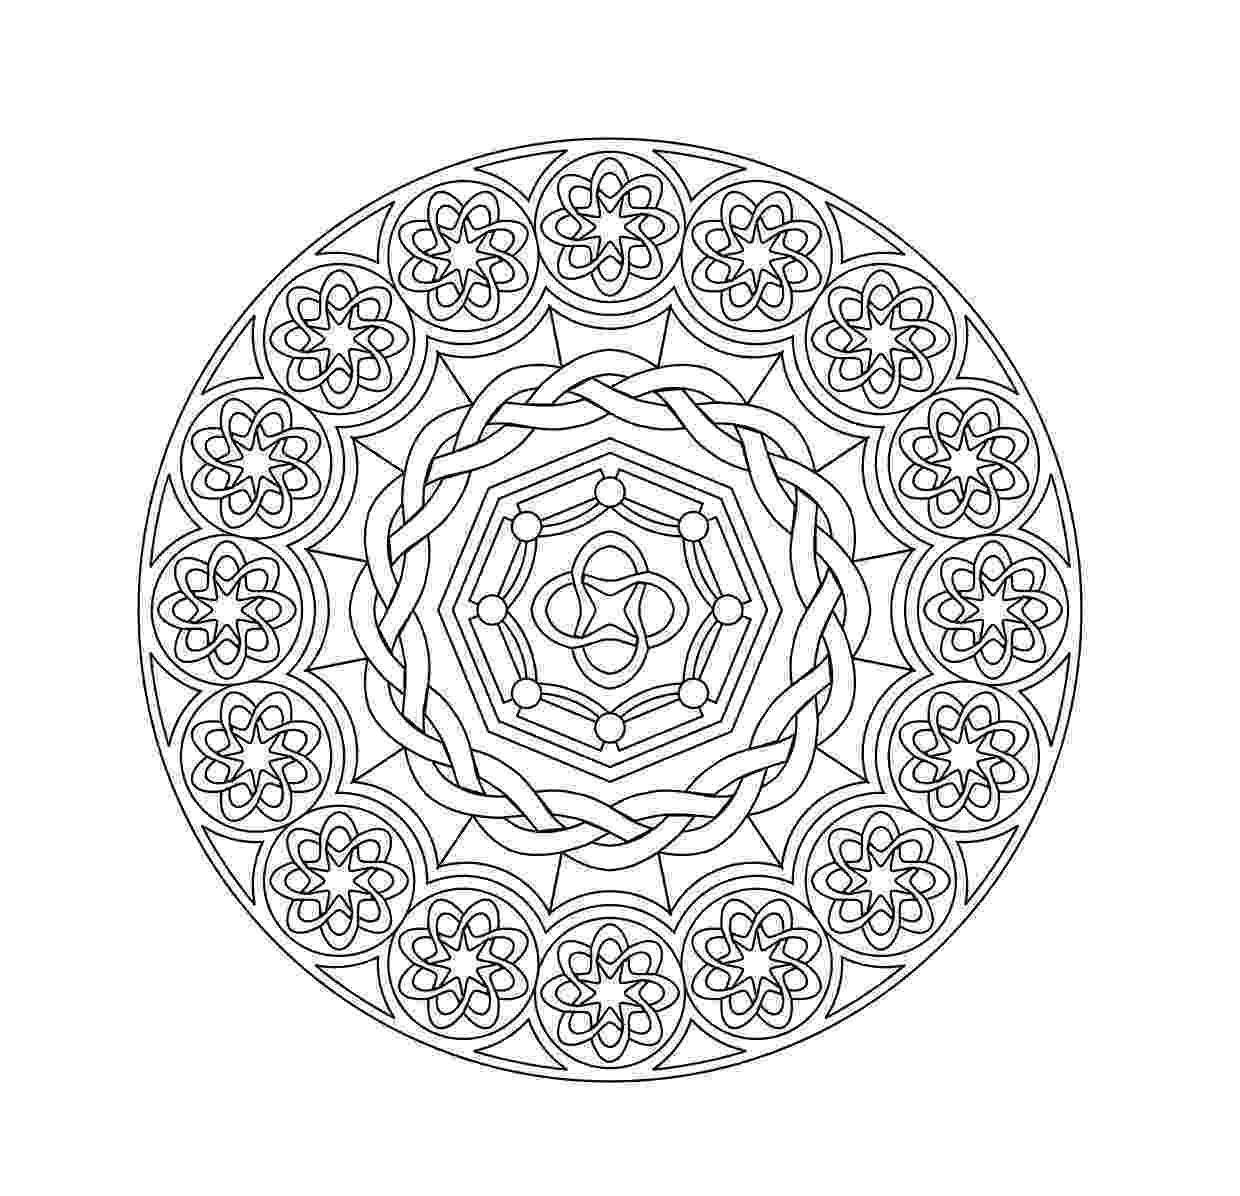 mandalas to color top 25 mandala coloring pages for your little ones color mandalas to